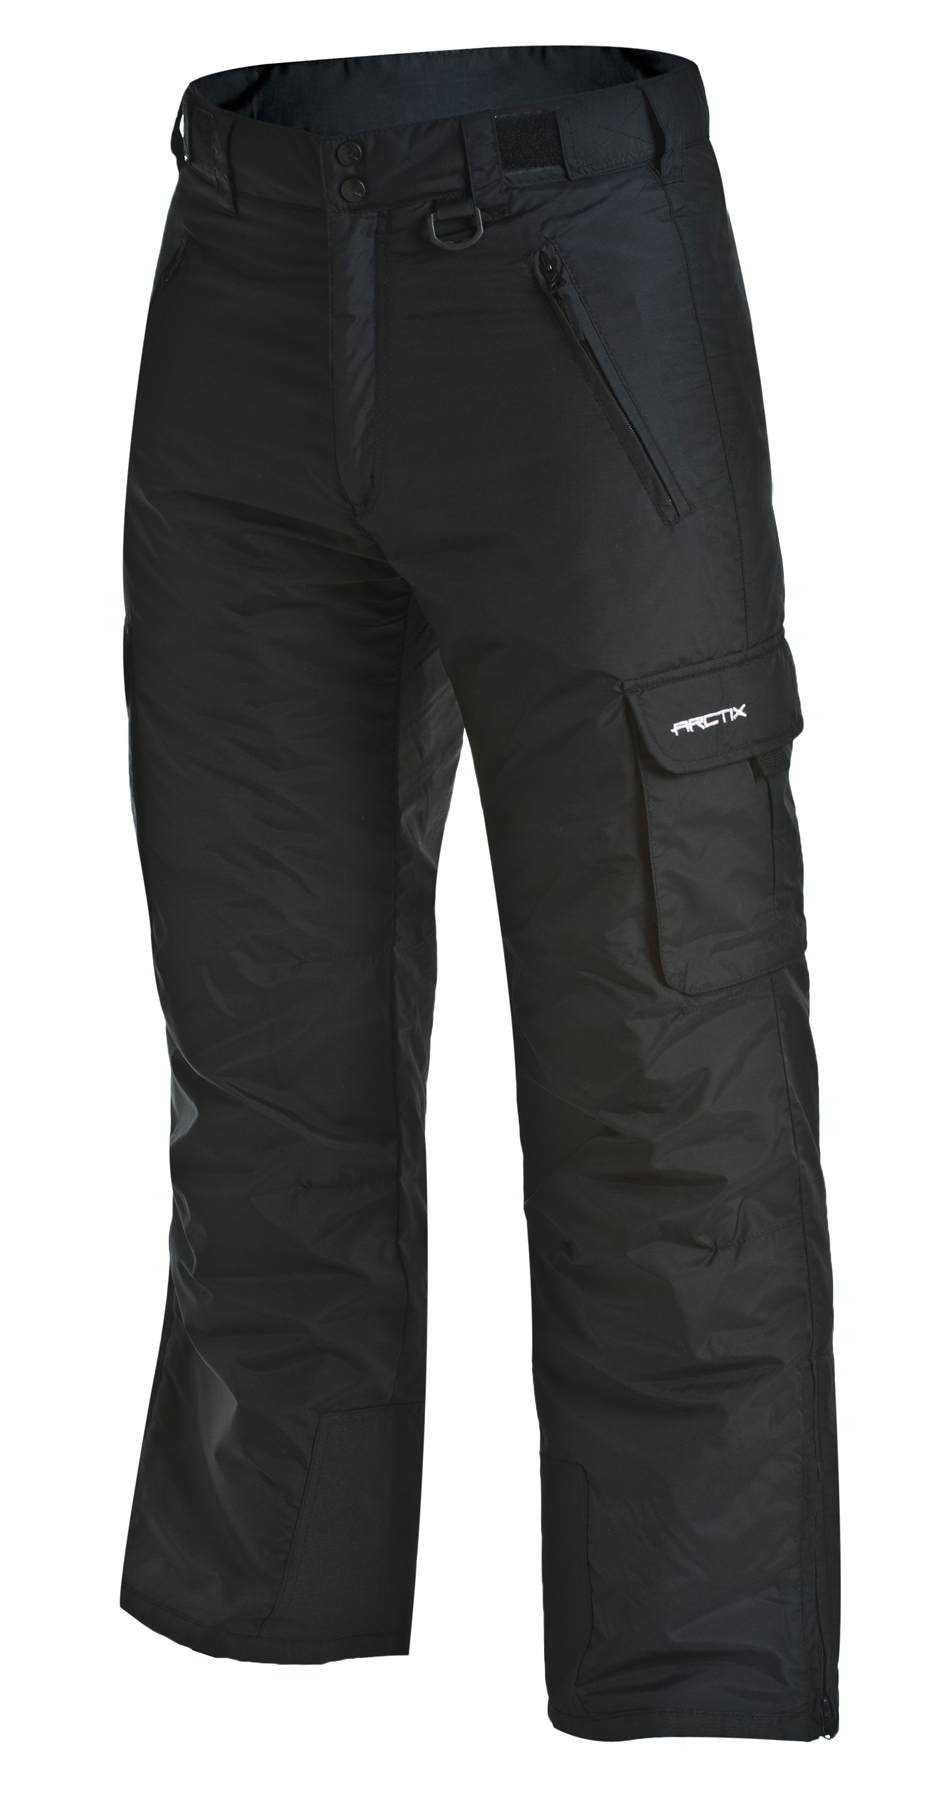 Shop the best selection of men's ski and snowboard pants at trueufilv3f.ga, where you'll find premium outdoor gear and clothing and experts to guide you through selection.